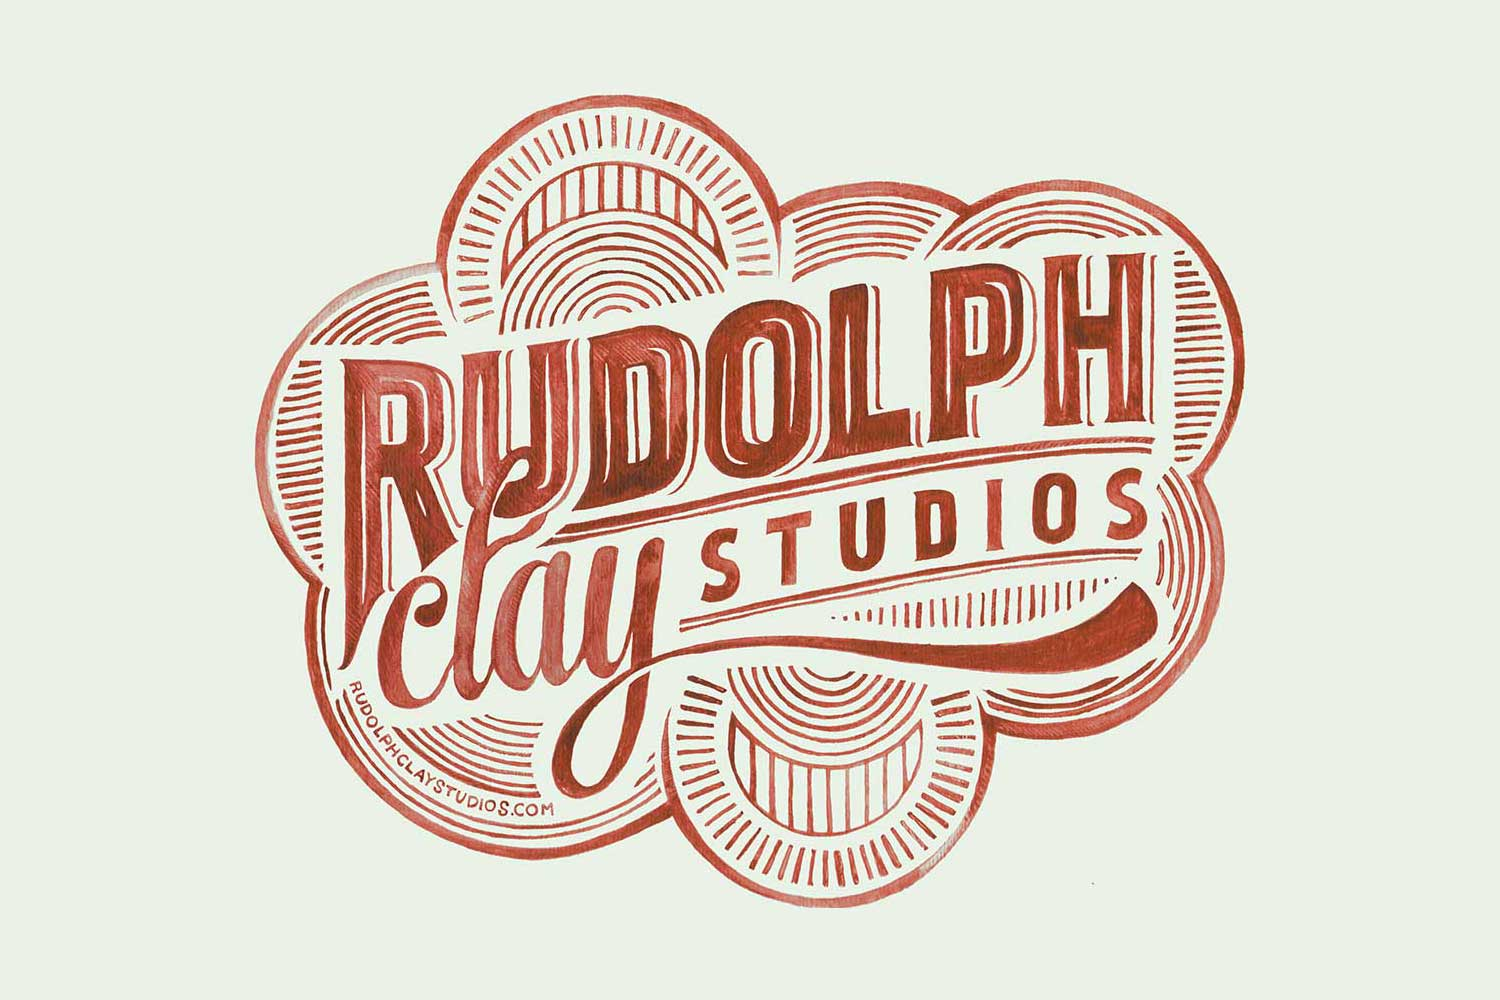 Rudolph-Clay-Studios-color2